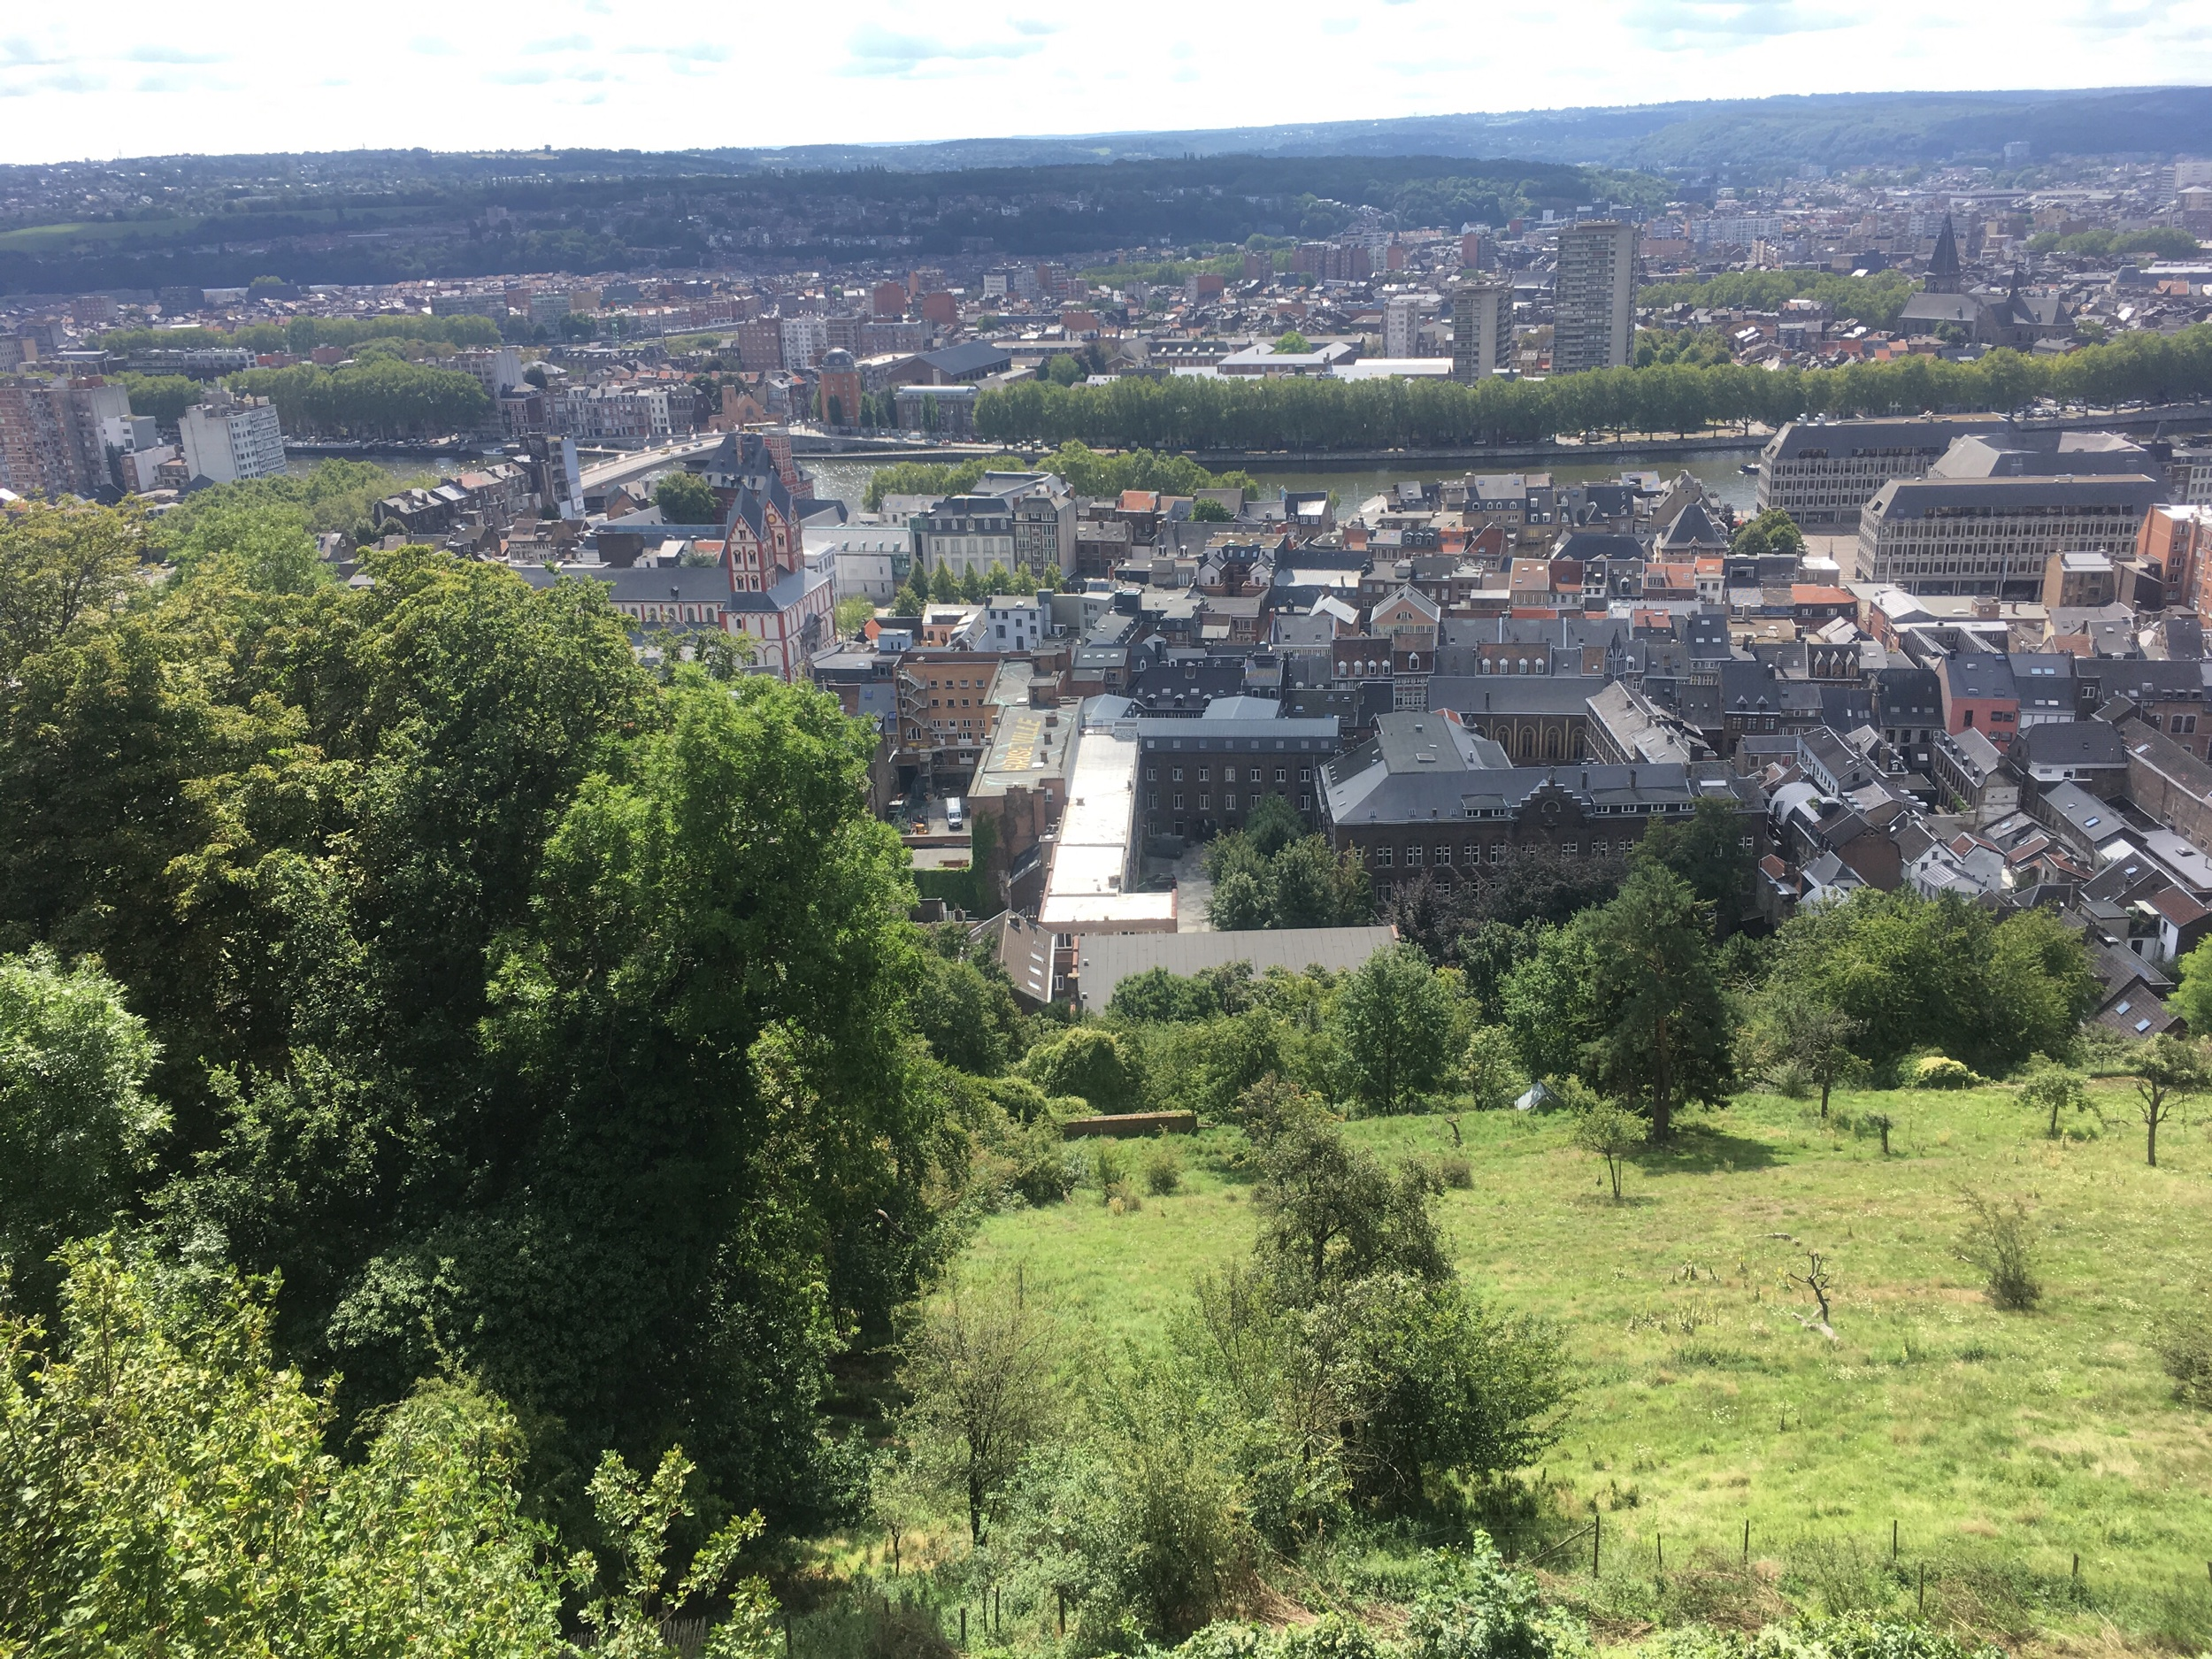 The view from the hill in Liège